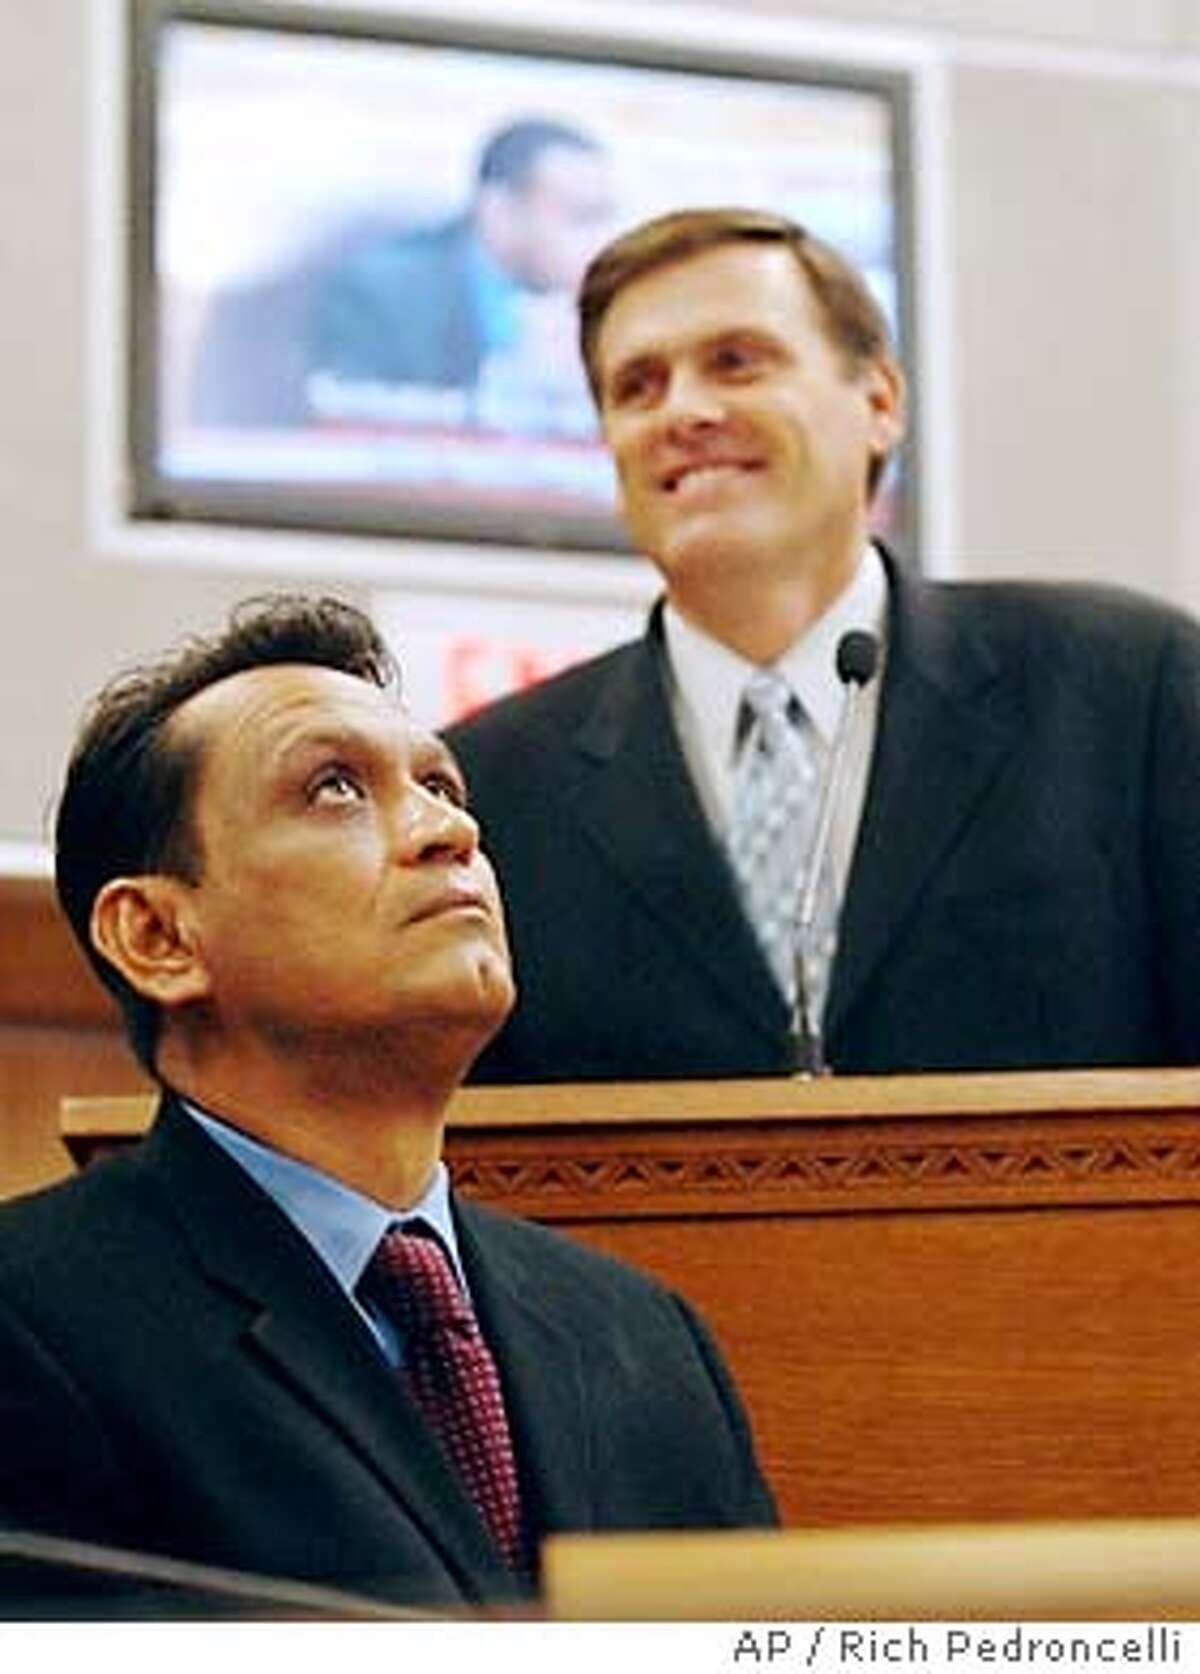 State Sen. Gil Cedillo, D-Los Angeles, left, author of the measure to give drivers licenses to undocumented immirgants, looks skyward while Sen. Rico Oller, R-San Andreas, author of a measure to repeal Cedillo's bill, smiles during a hearing of the Senate Transportation Committee at the Capitol in Sacramento, Calif., Monday, Nov. 24, 2003. Though Cedillo stood by his measure, which would have let 2 million undocumented immigrants obtain drivers' licenses, he urged his colleagues to repeal the law in the face of widespread public opposition. Oller's measure was approved by the committee and sent to the Senate floor. (AP Photo/Rich Pedroncelli